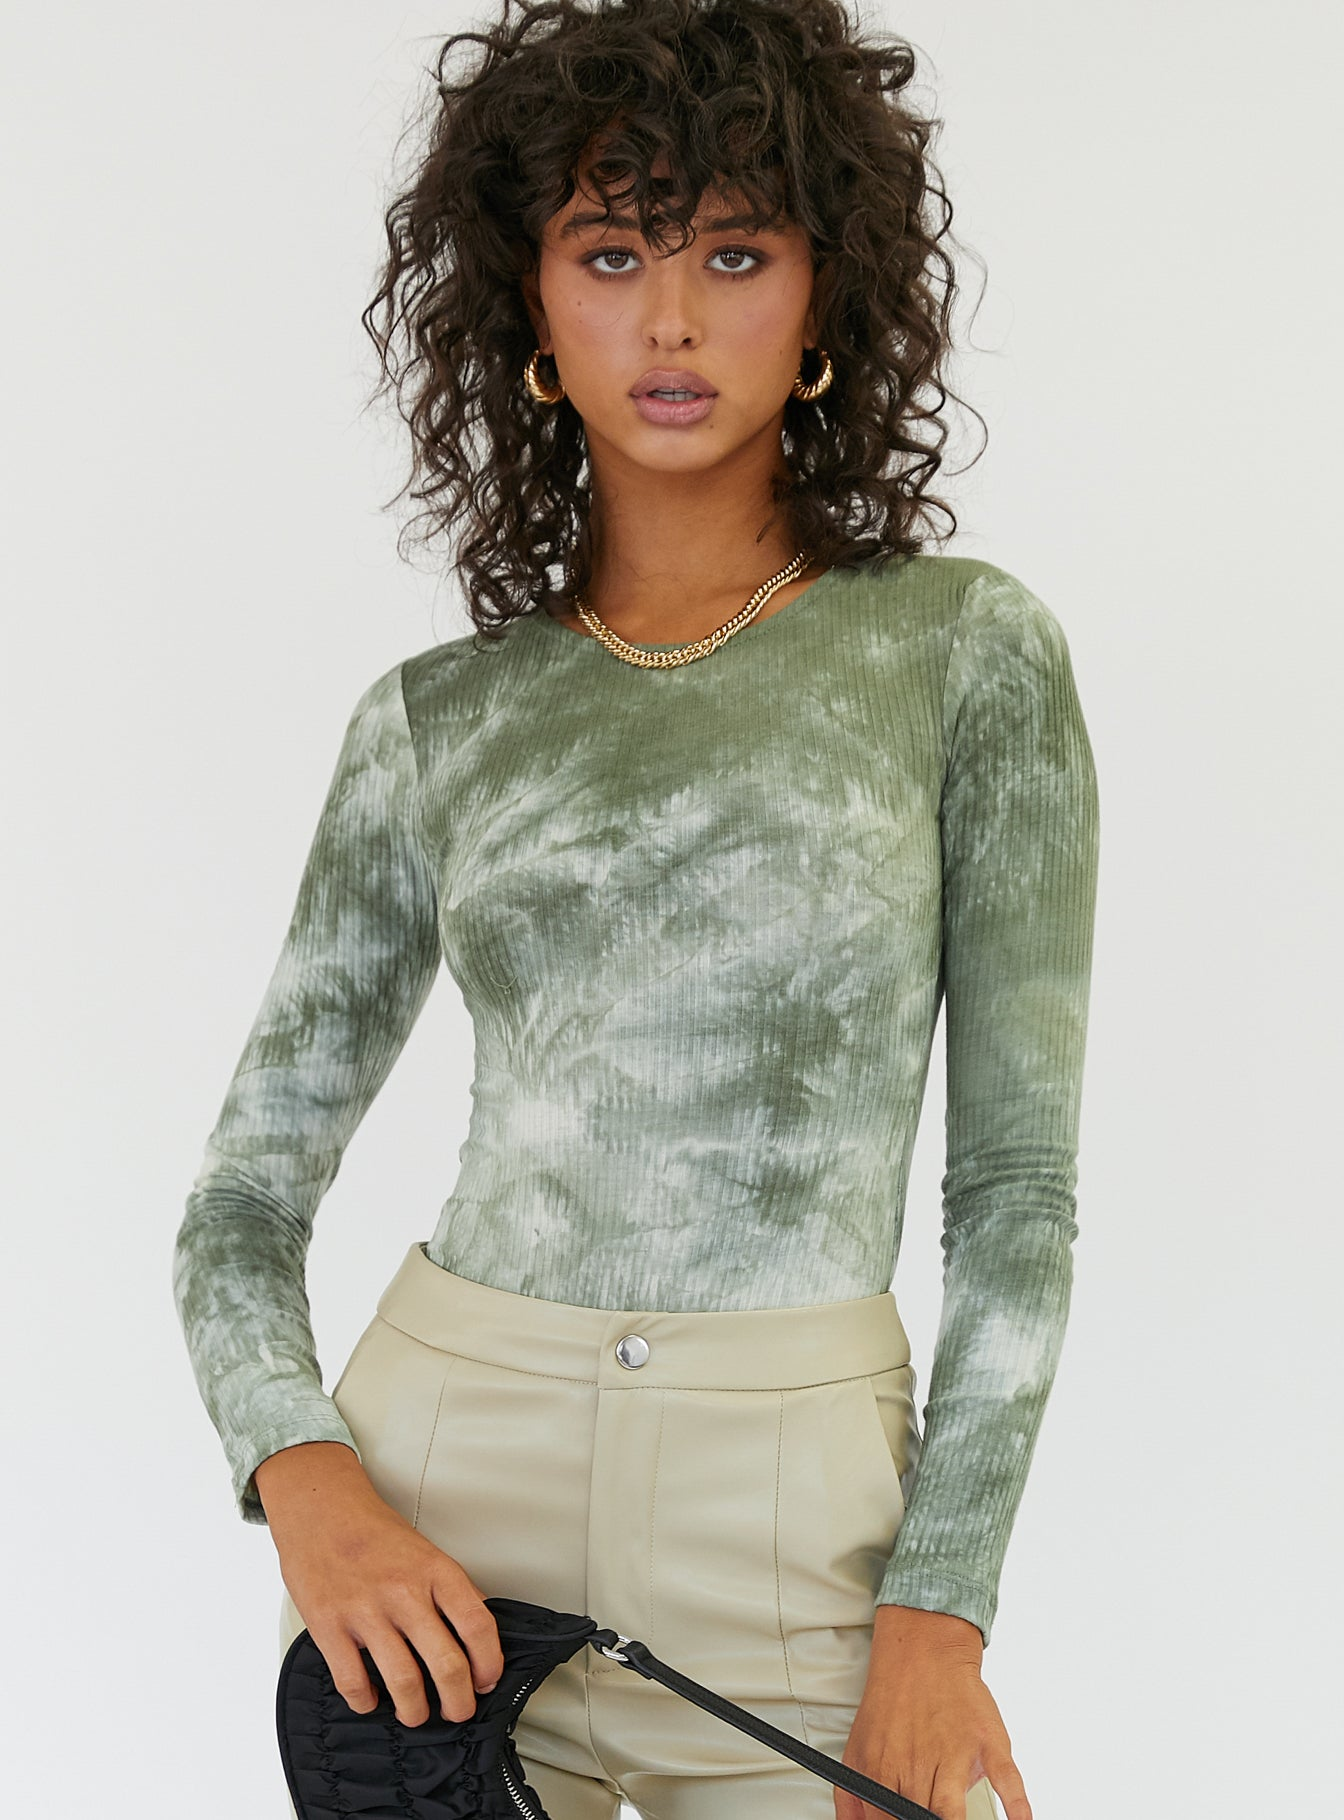 Lorde Bodysuit Green